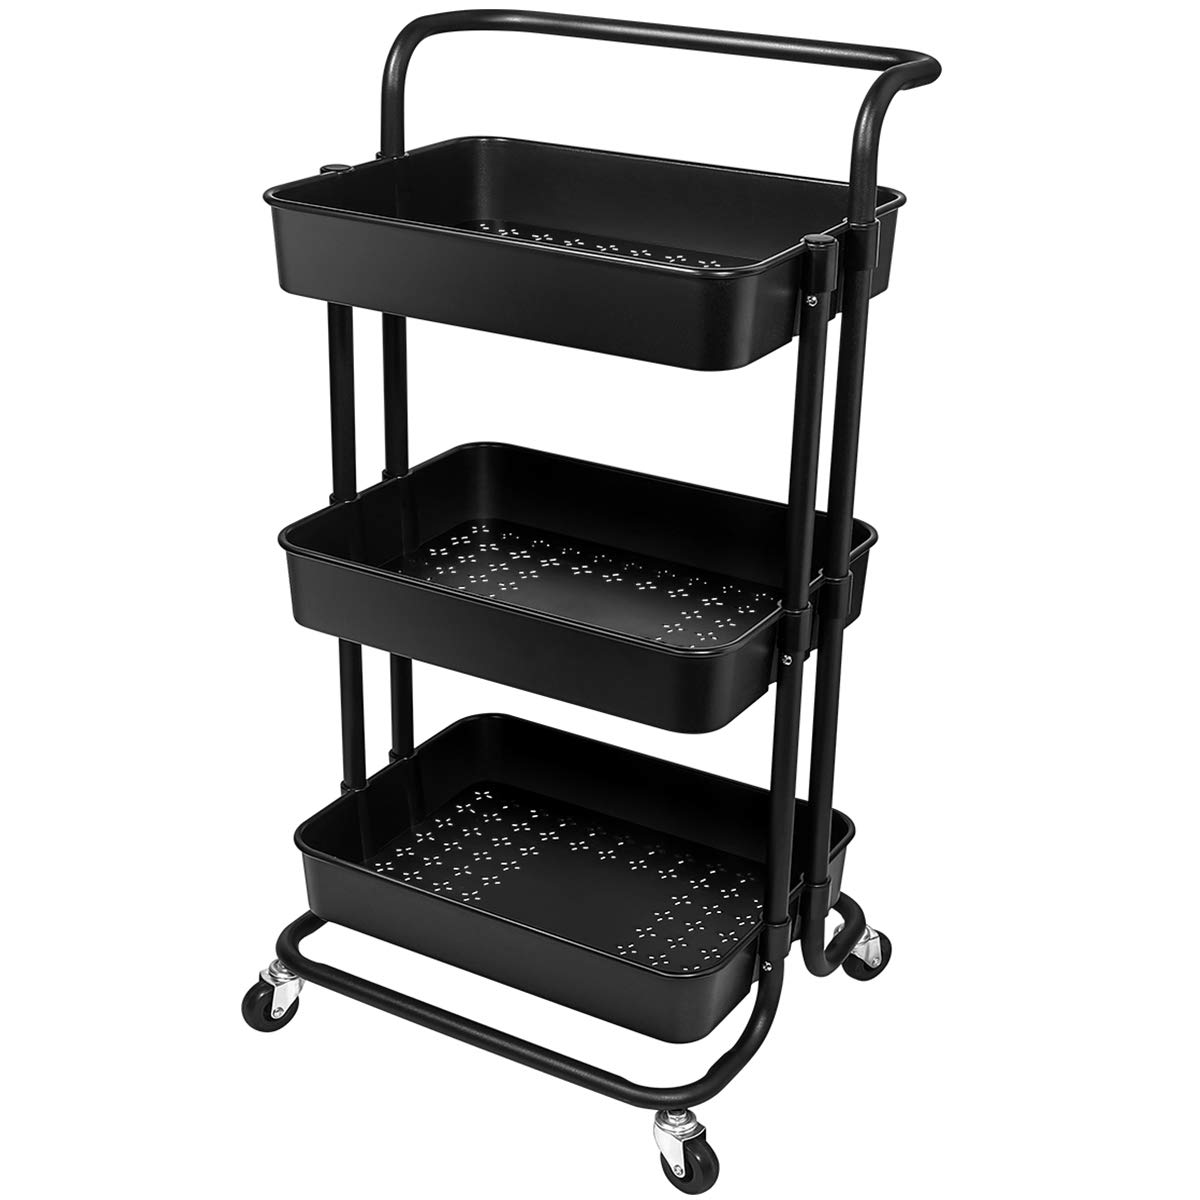 Homemaxs 3 Tier Utility Cart - Heavy Duty Rolling Cart with Handles and Roller Wheels Storage Cart for Kitchen, Coffee Bar, Microwave Cooking Station, Storage, Office, Bathroom (Black)